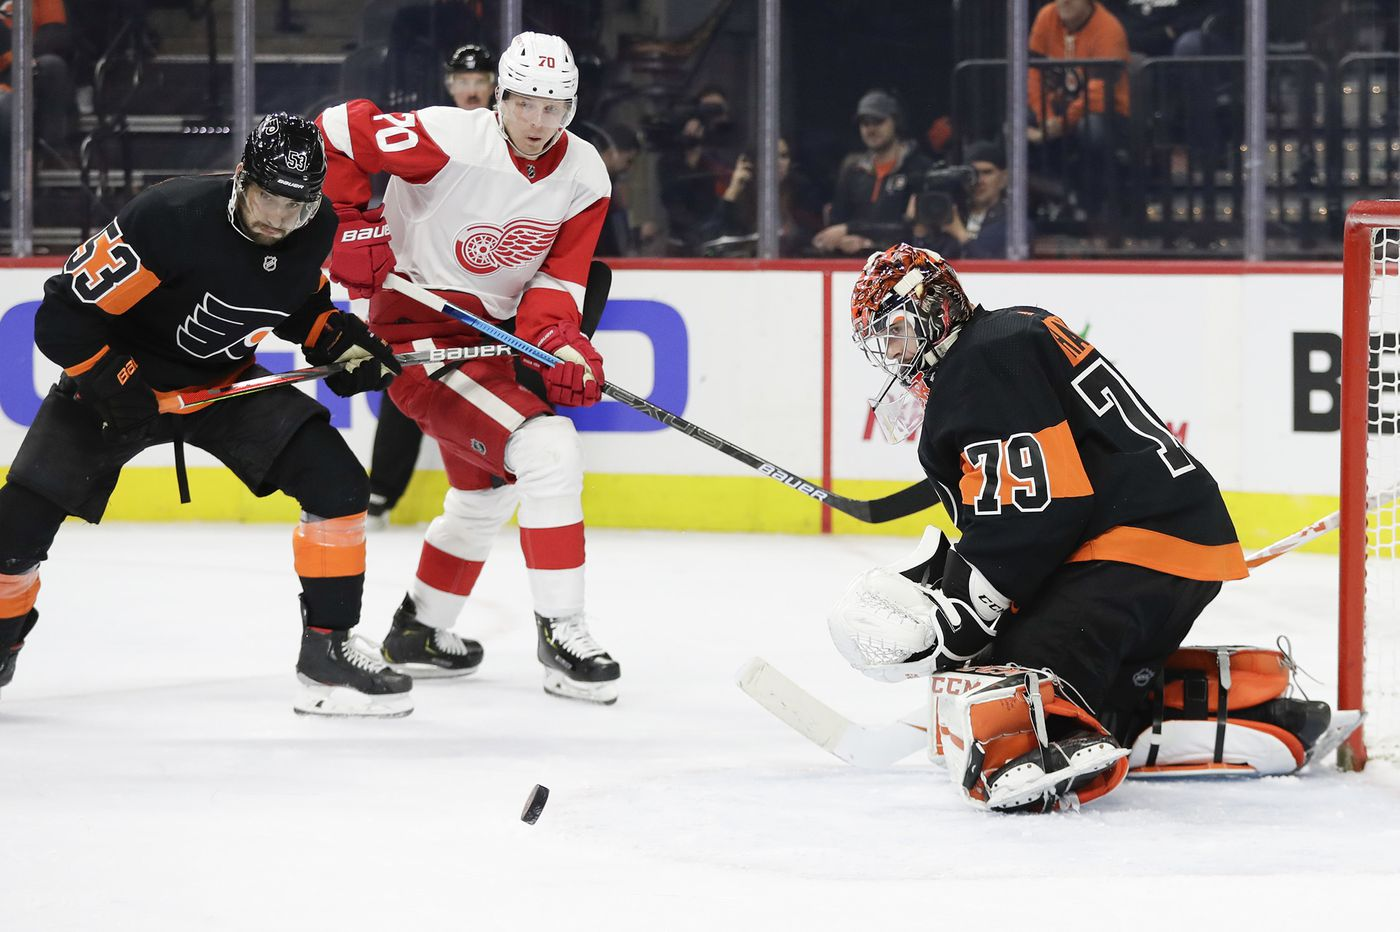 Ghost's future, Carter Hart's road woes, and other Flyers issues | On the Fly